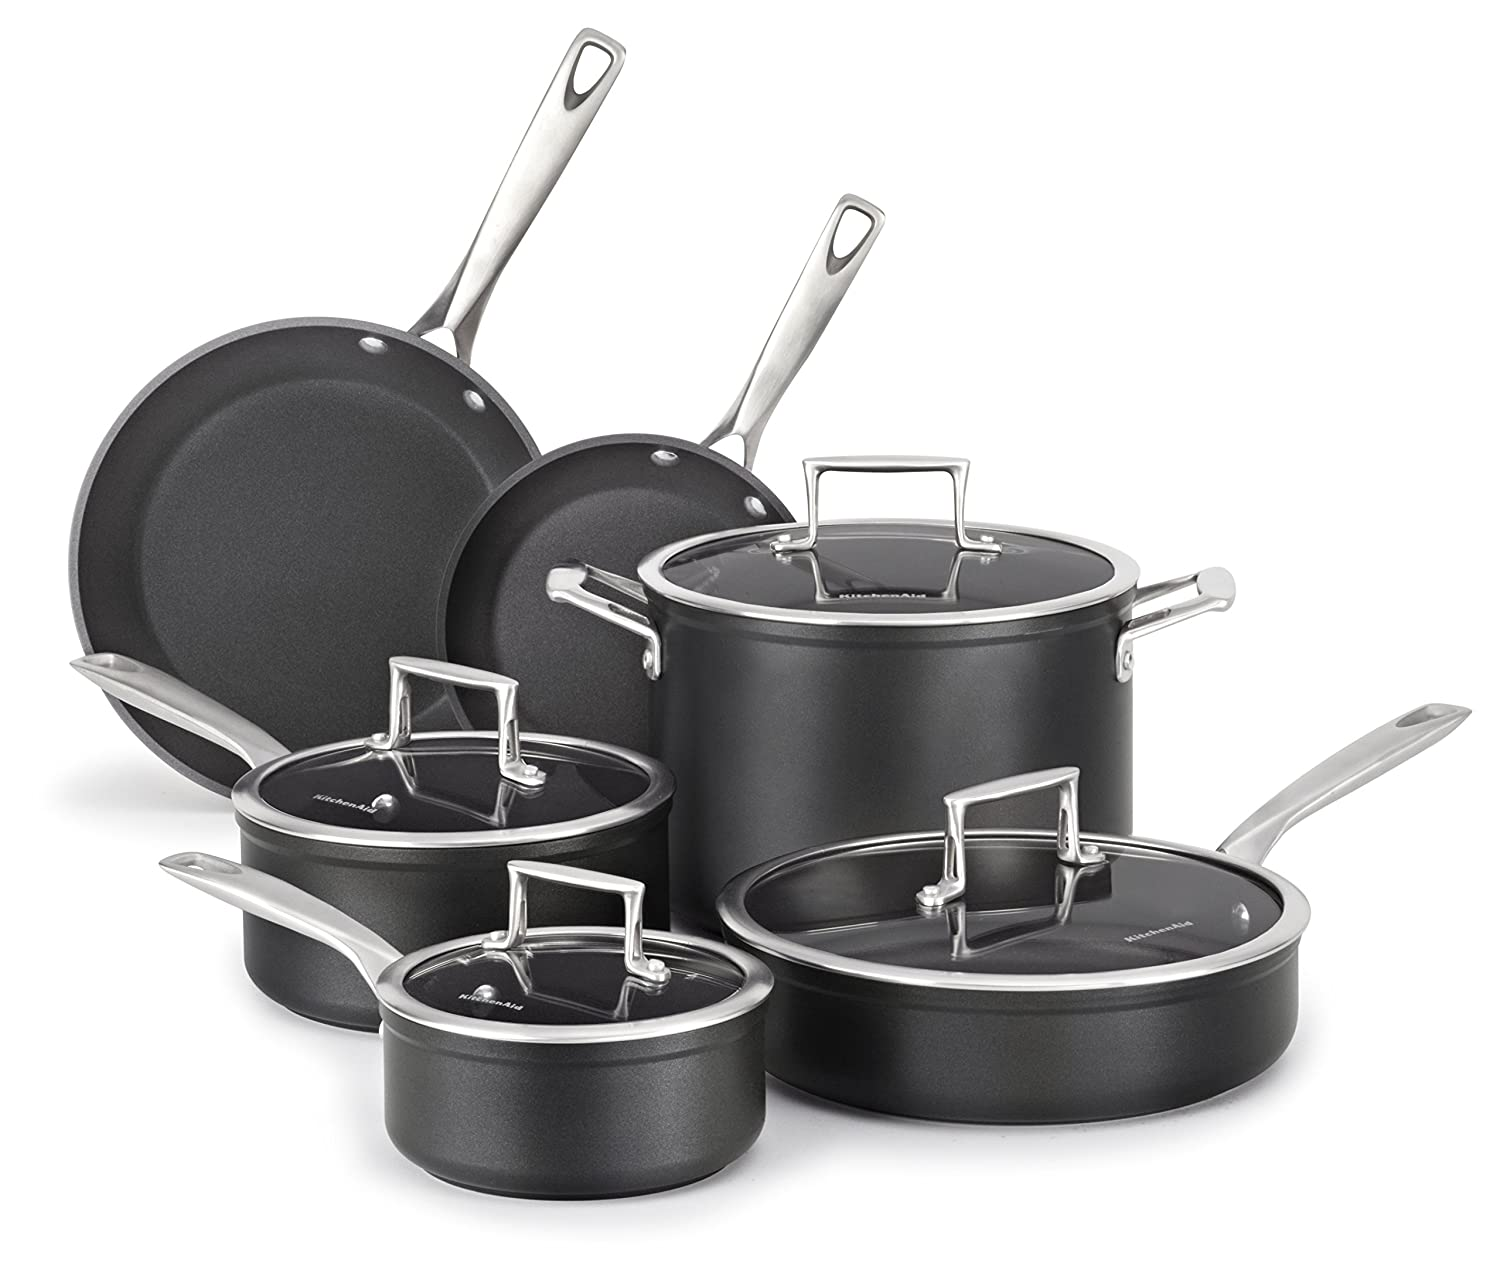 Best Non Stick Cookware 2019 Editor S Top 5 Picks And Reviews